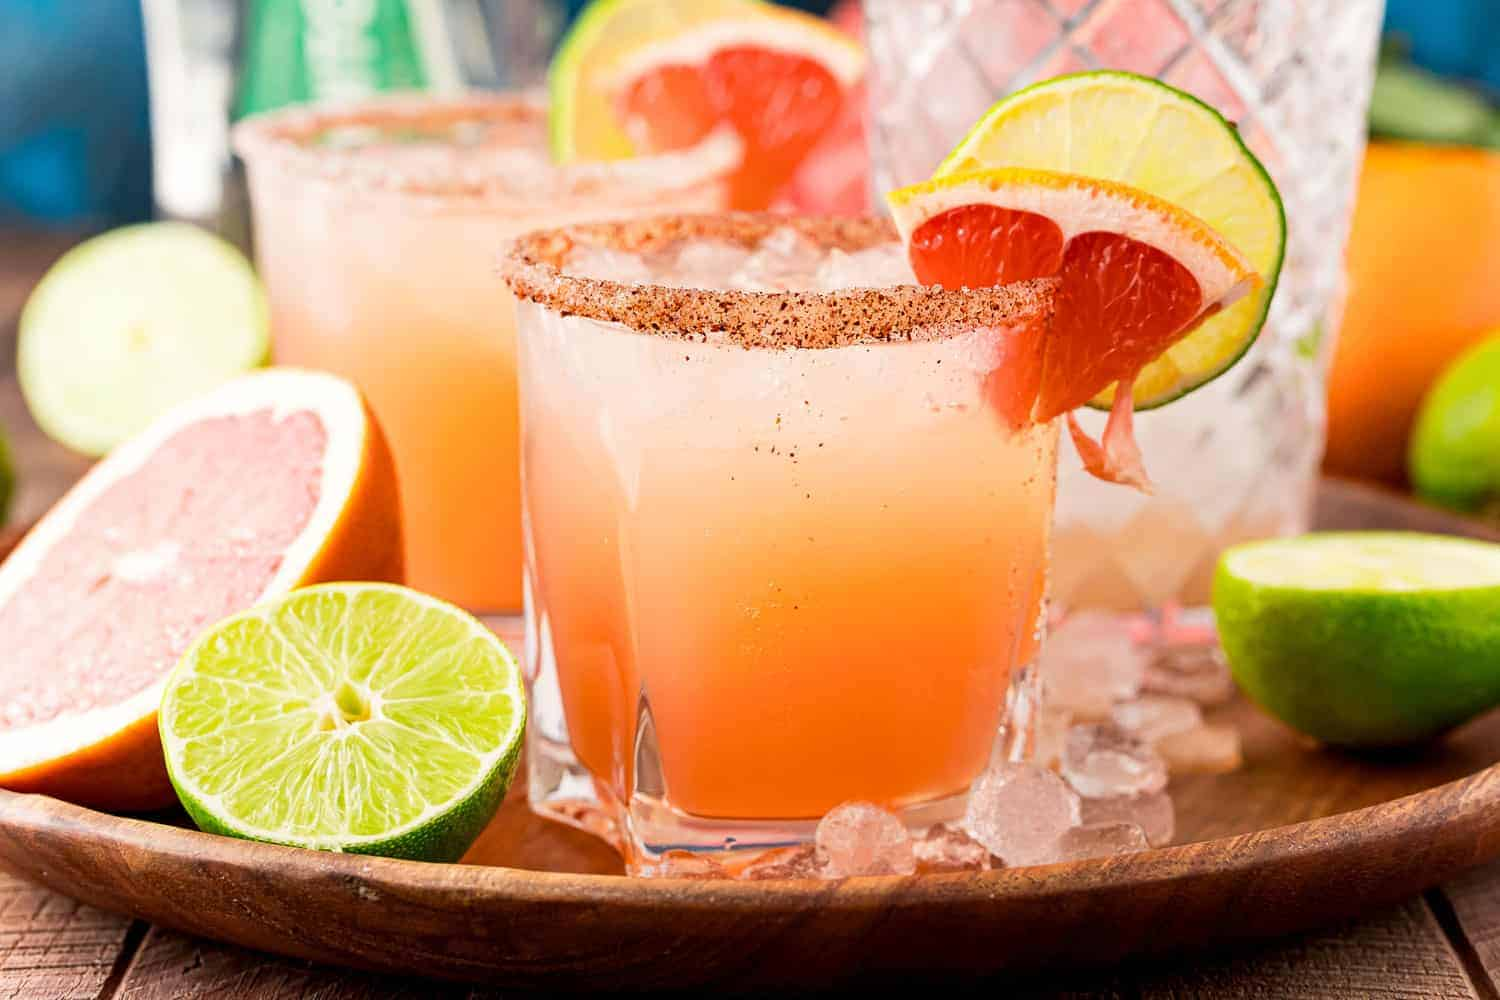 Light orange-pink cocktails on a wooden tray with ice, limes, grapefruits.